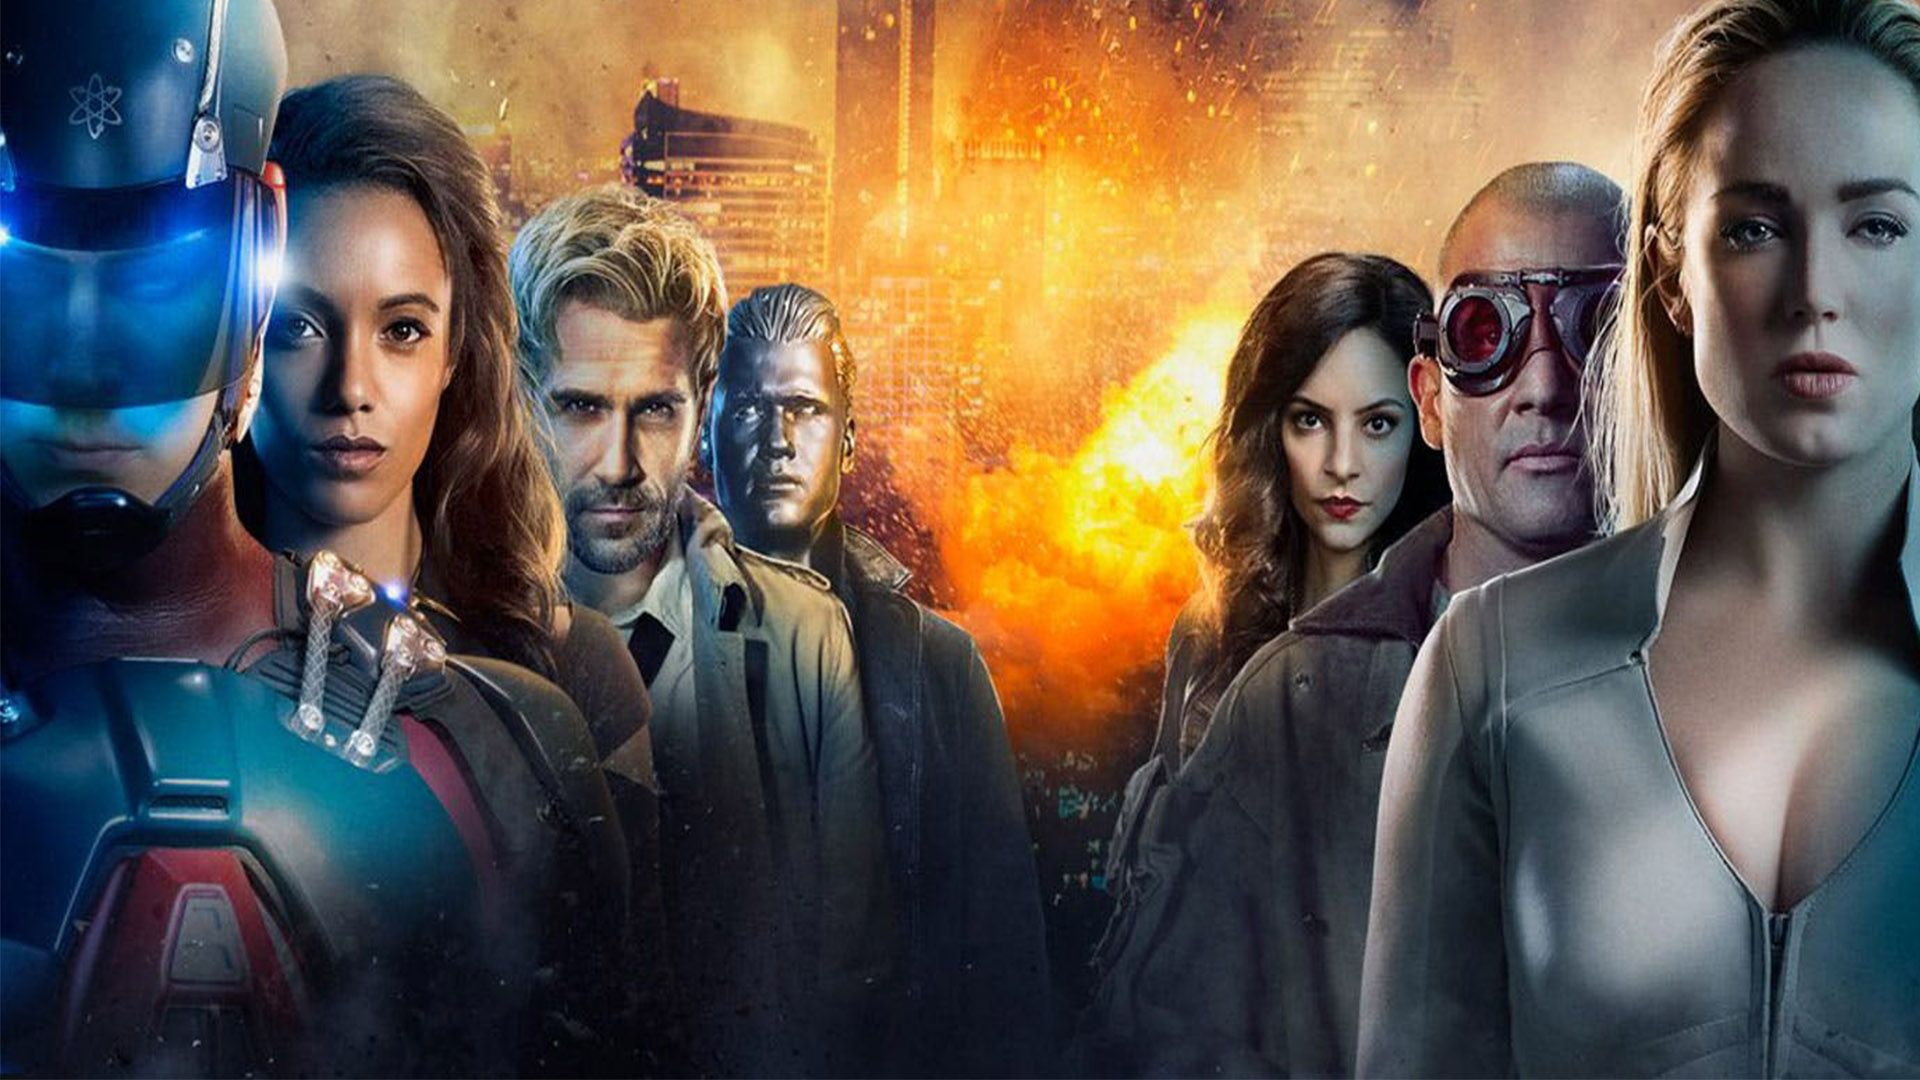 Legends Of Tomorrow Wallpapers Top Free Legends Of Tomorrow